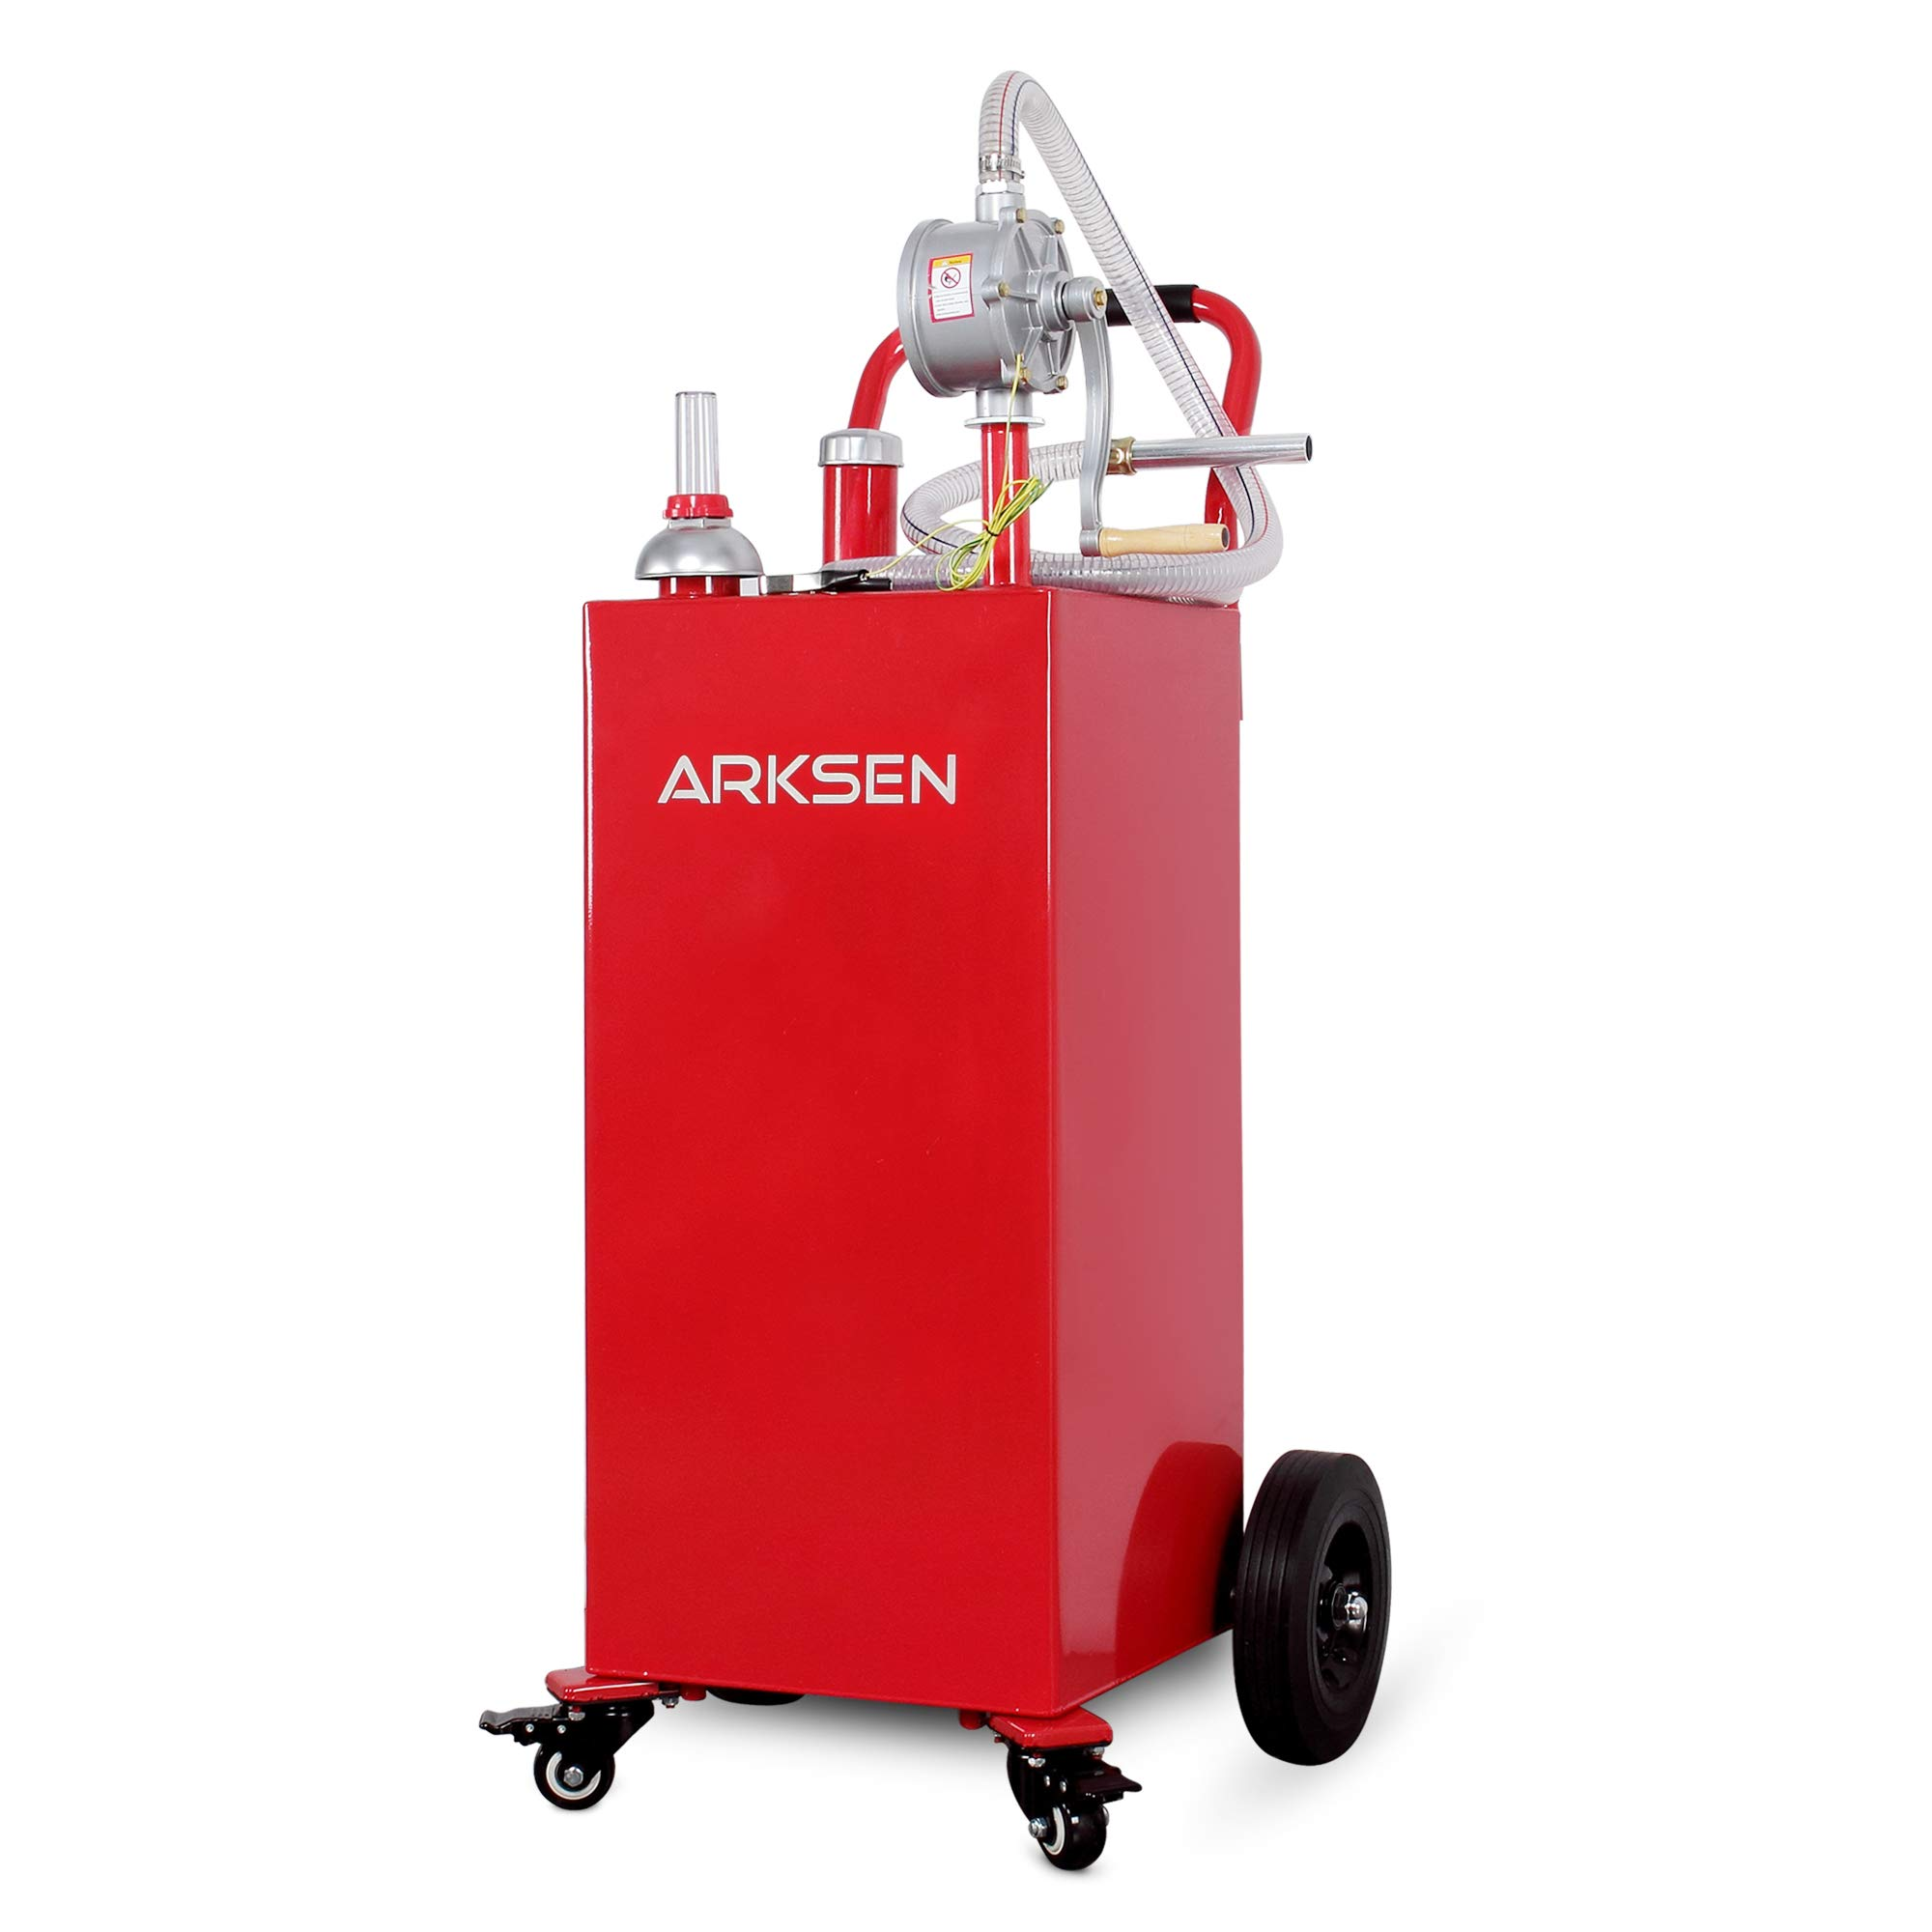 Arksen 35 Gallon Portable Gas Caddy Fuel Storage Tank Large Gasoline Diesel Can Hand Siphon Pump Rolling Pneumatic Wheels Boat ATV Car Motorcycle by ARKSEN